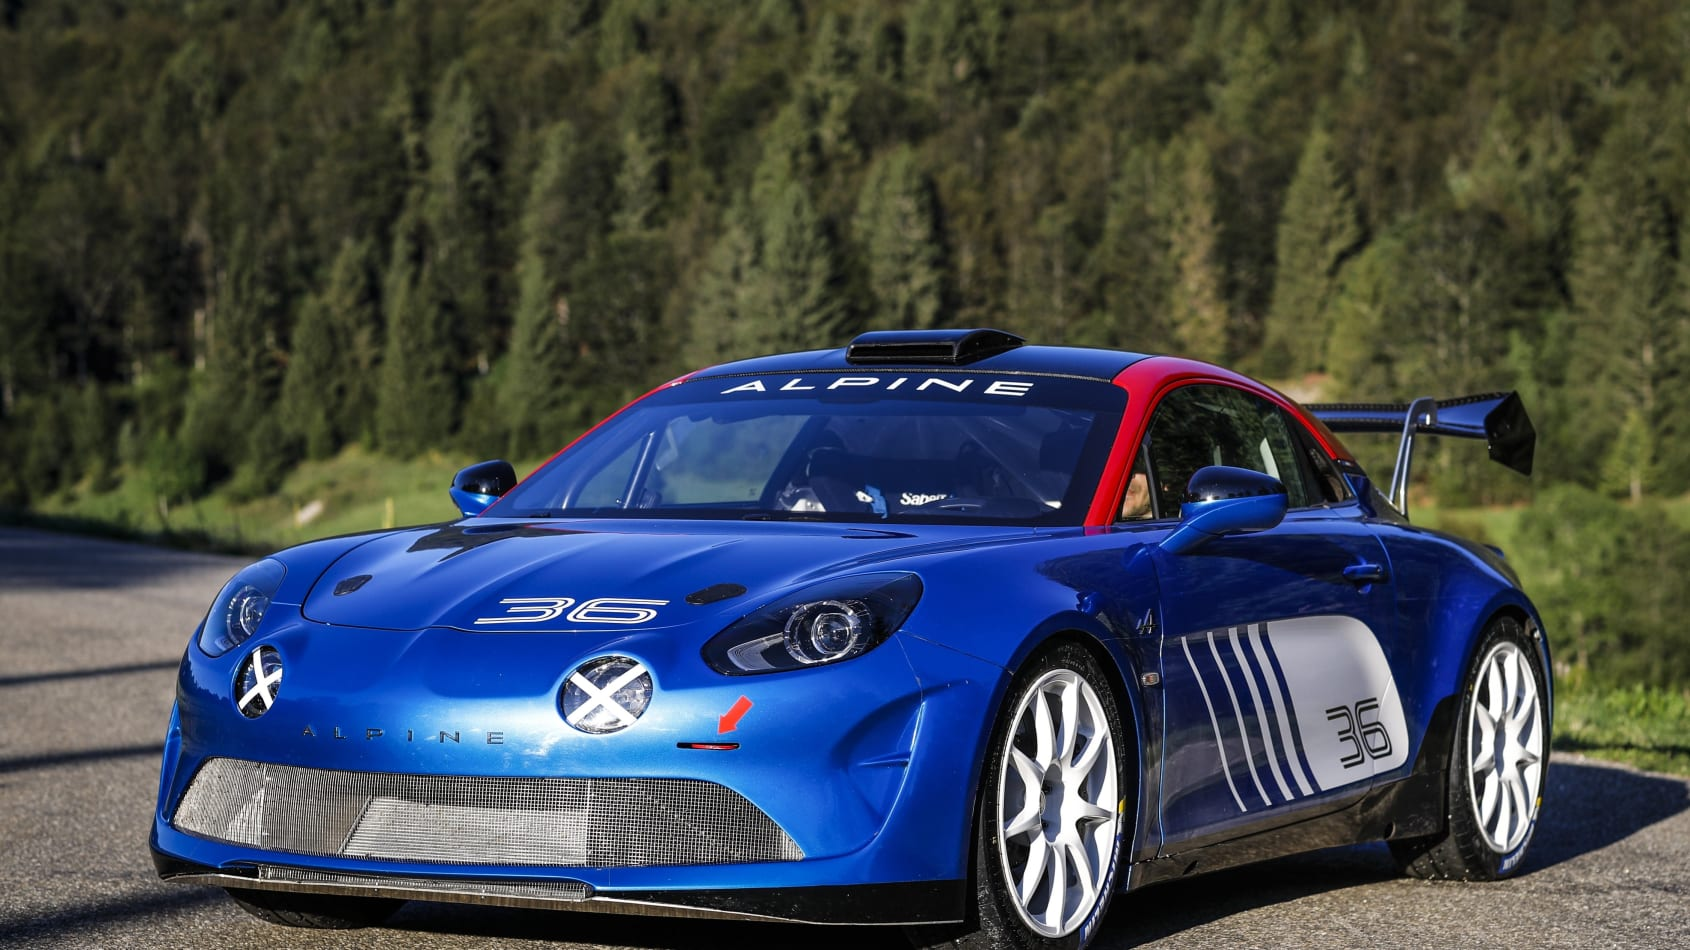 21231359_2019_-_ALPINE_A110_RALLY.jpg